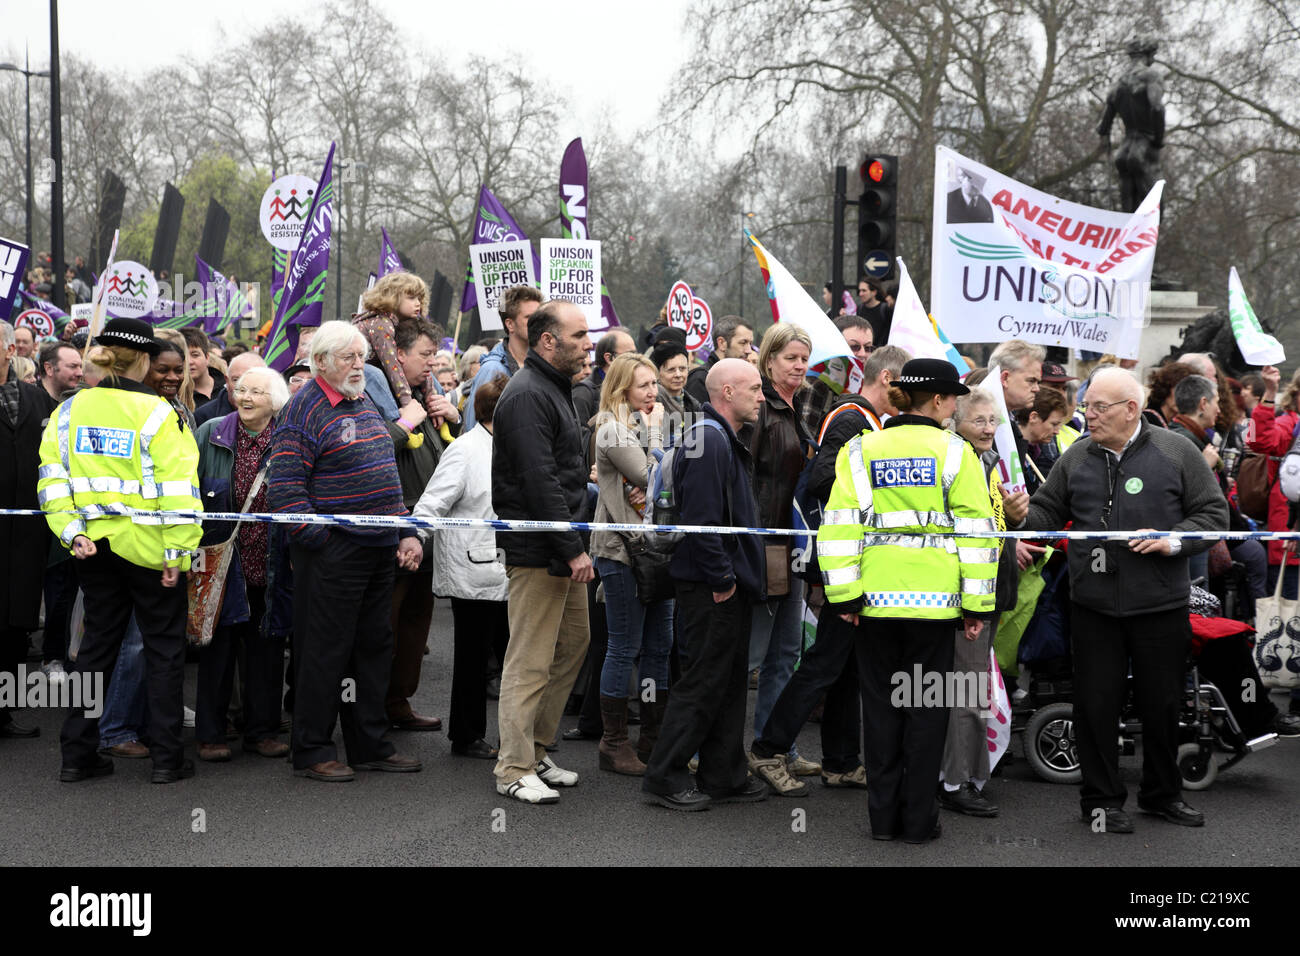 Demonstration against government cuts in public spending. - Stock Image